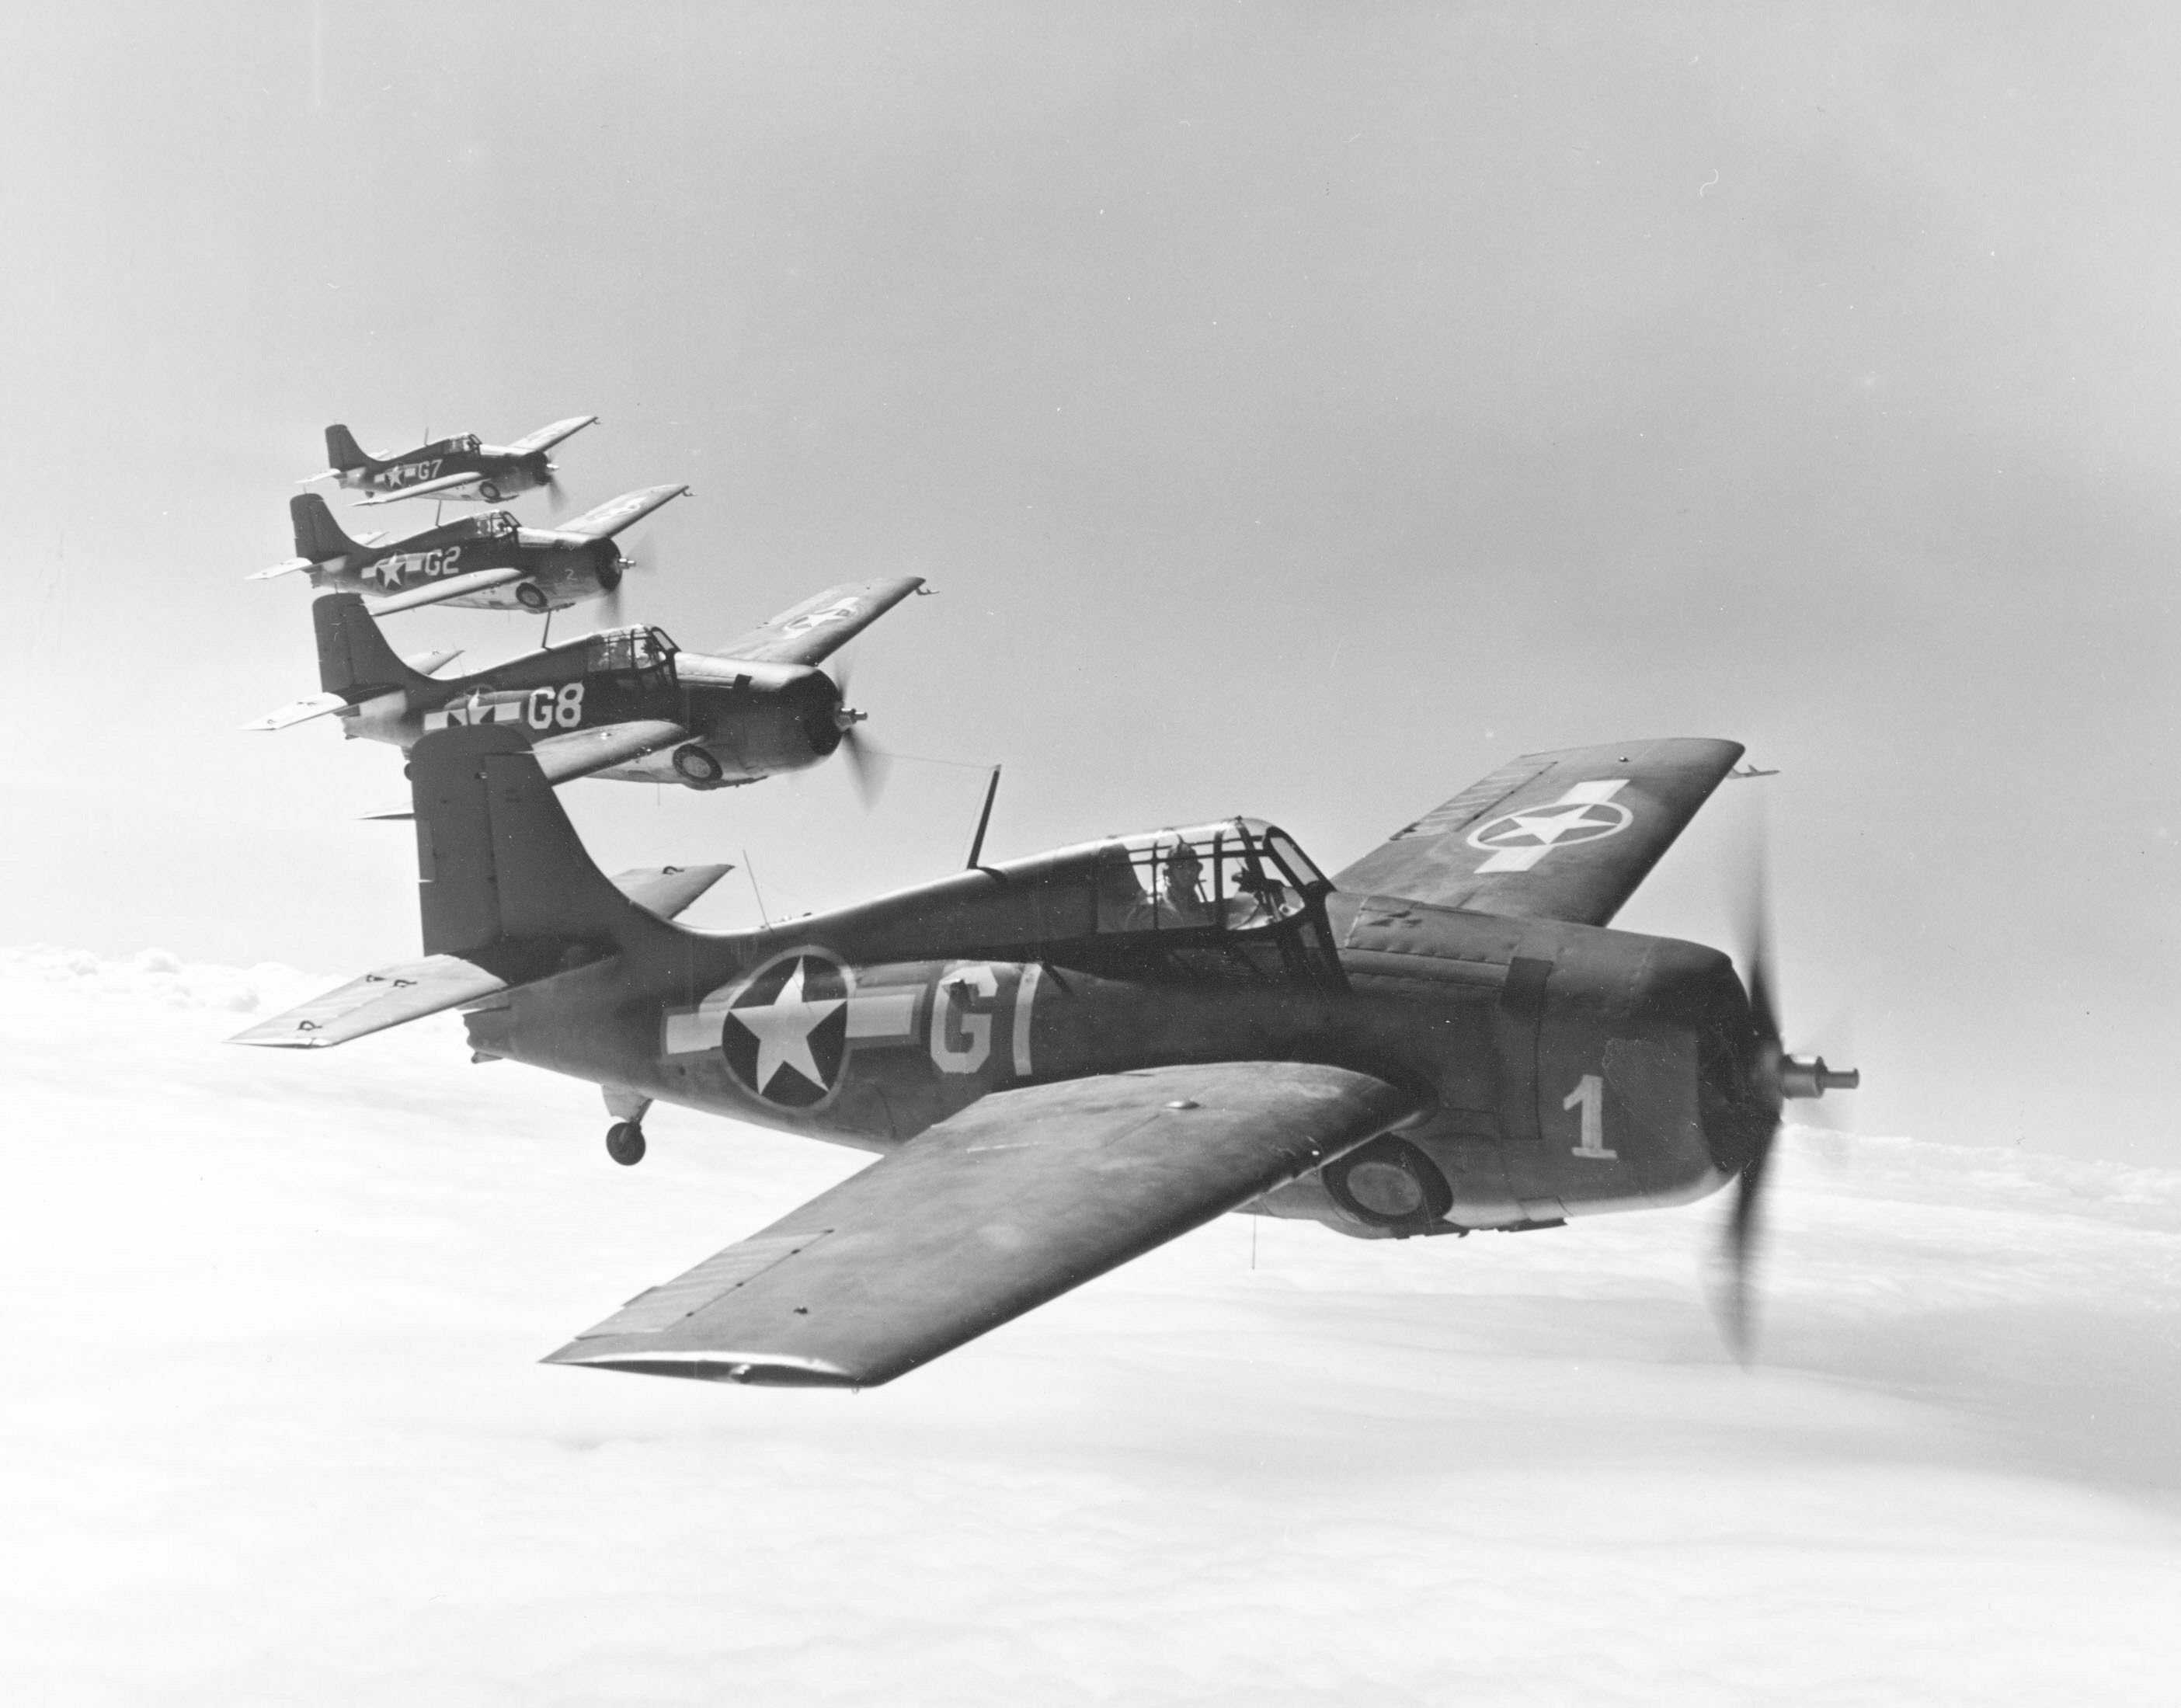 The Wildcats may not be the best looking aircraft of WW2, but they were among the most successful in the Pacific Theatre of Operations.